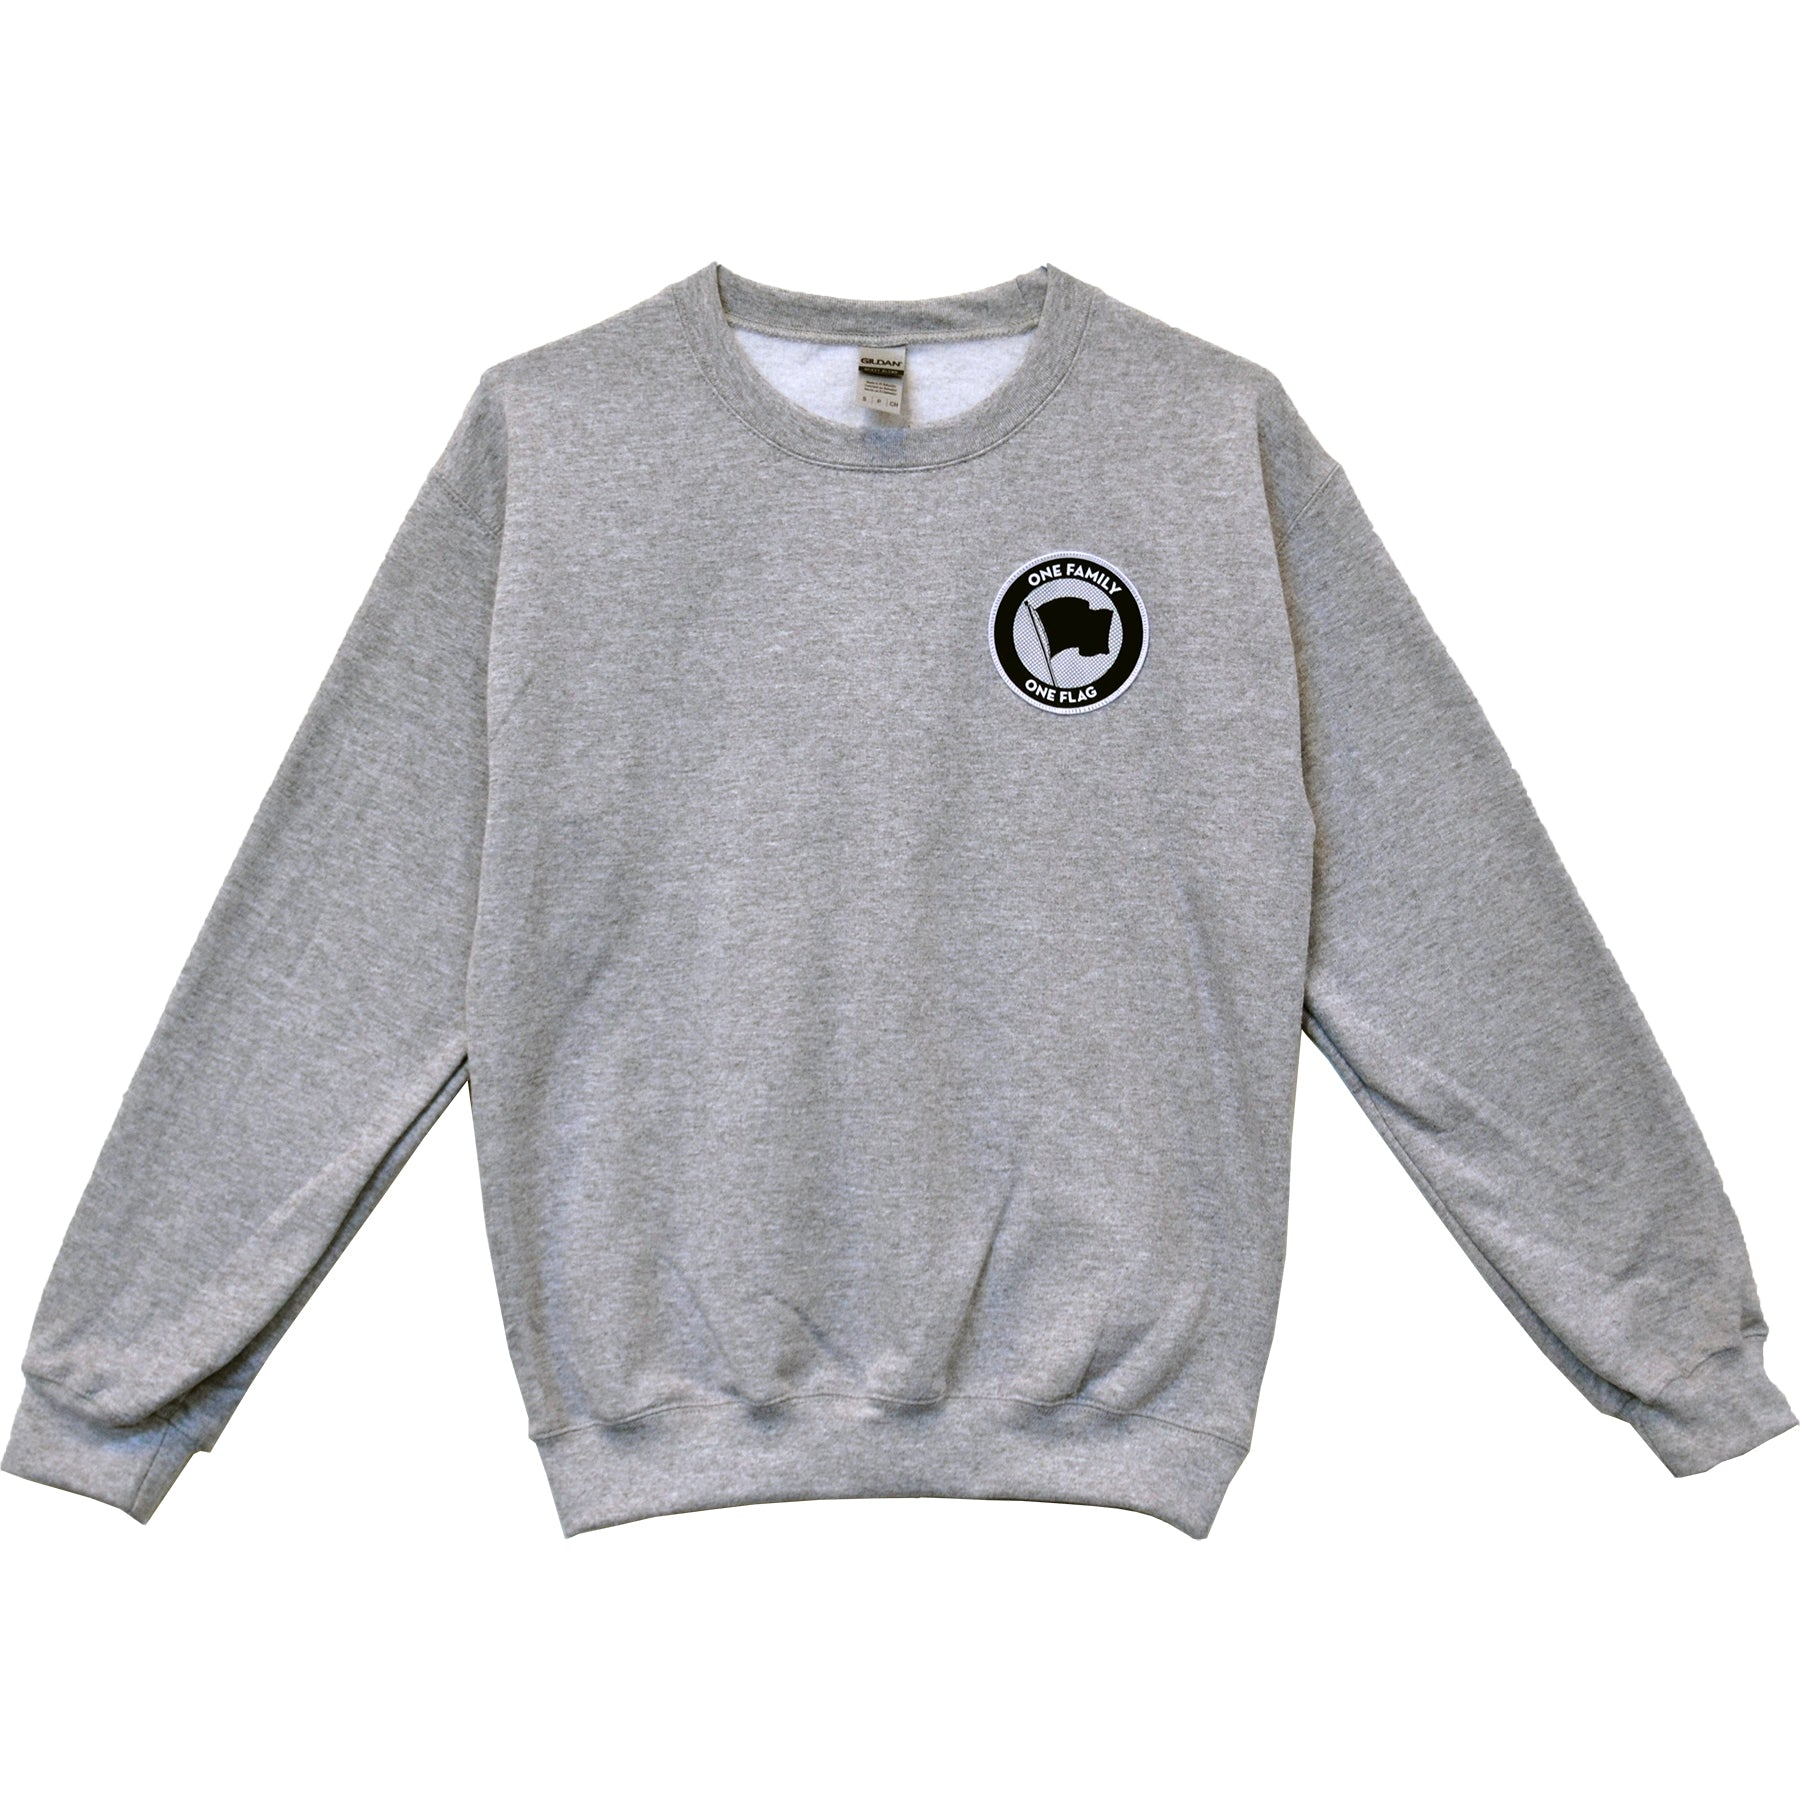 Pirates Press Records - One Family, One Flag - Patch - Grey - Crewneck Sweatshirt